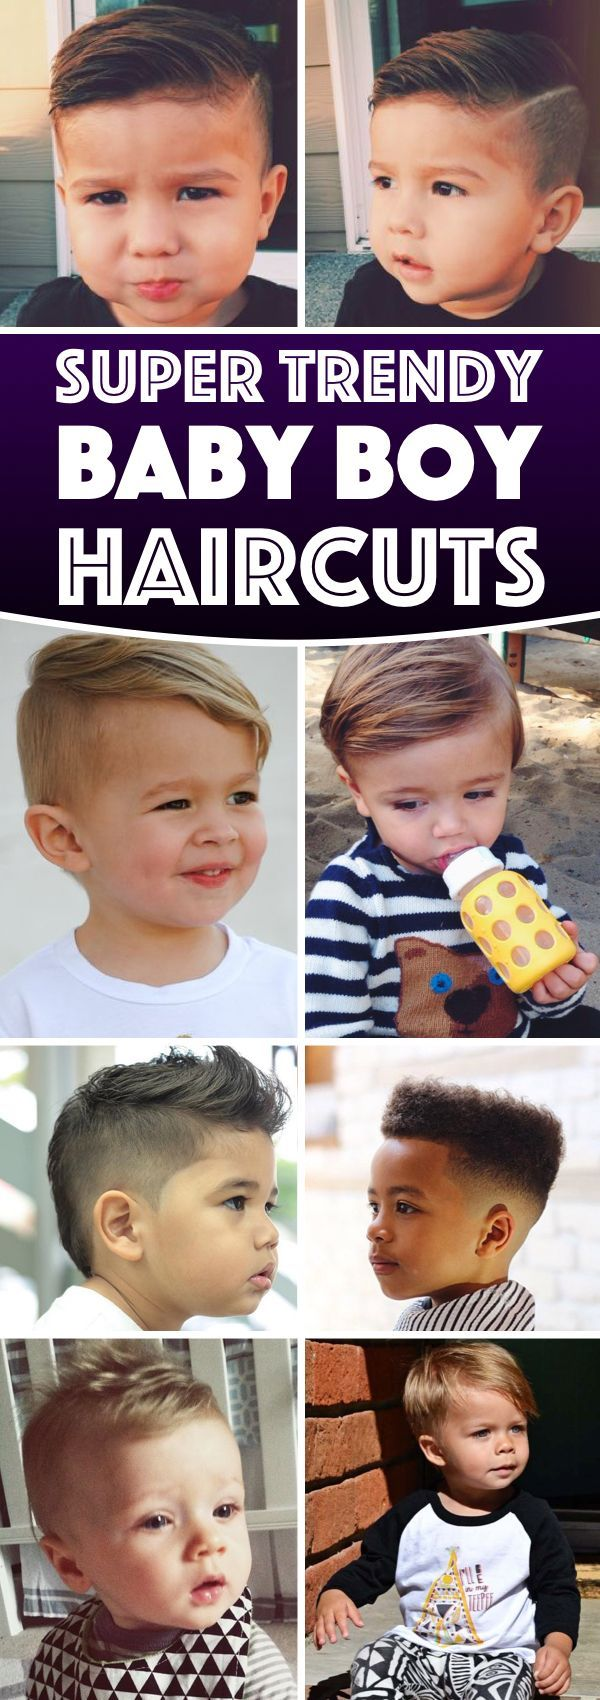 super trendy baby boy haircuts charming your little oneus